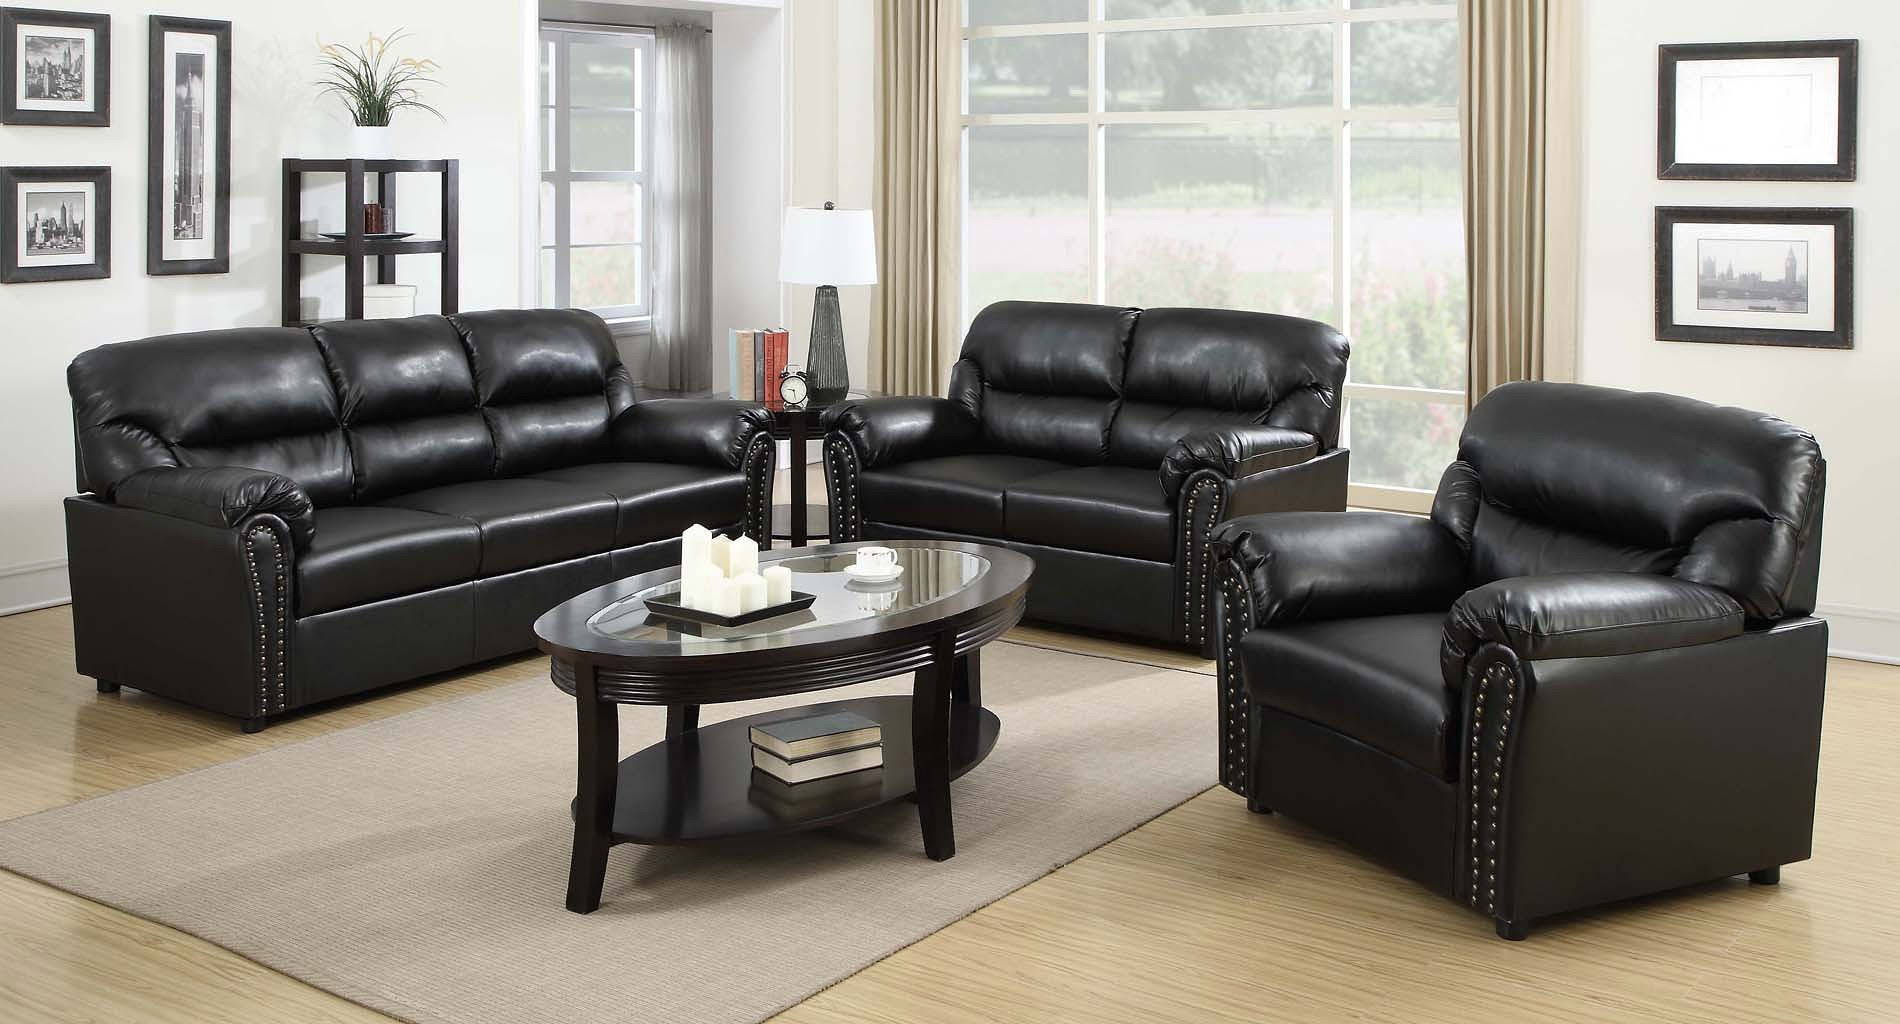 G263 Living Room Set Black Glory Furniture Furniture Cart